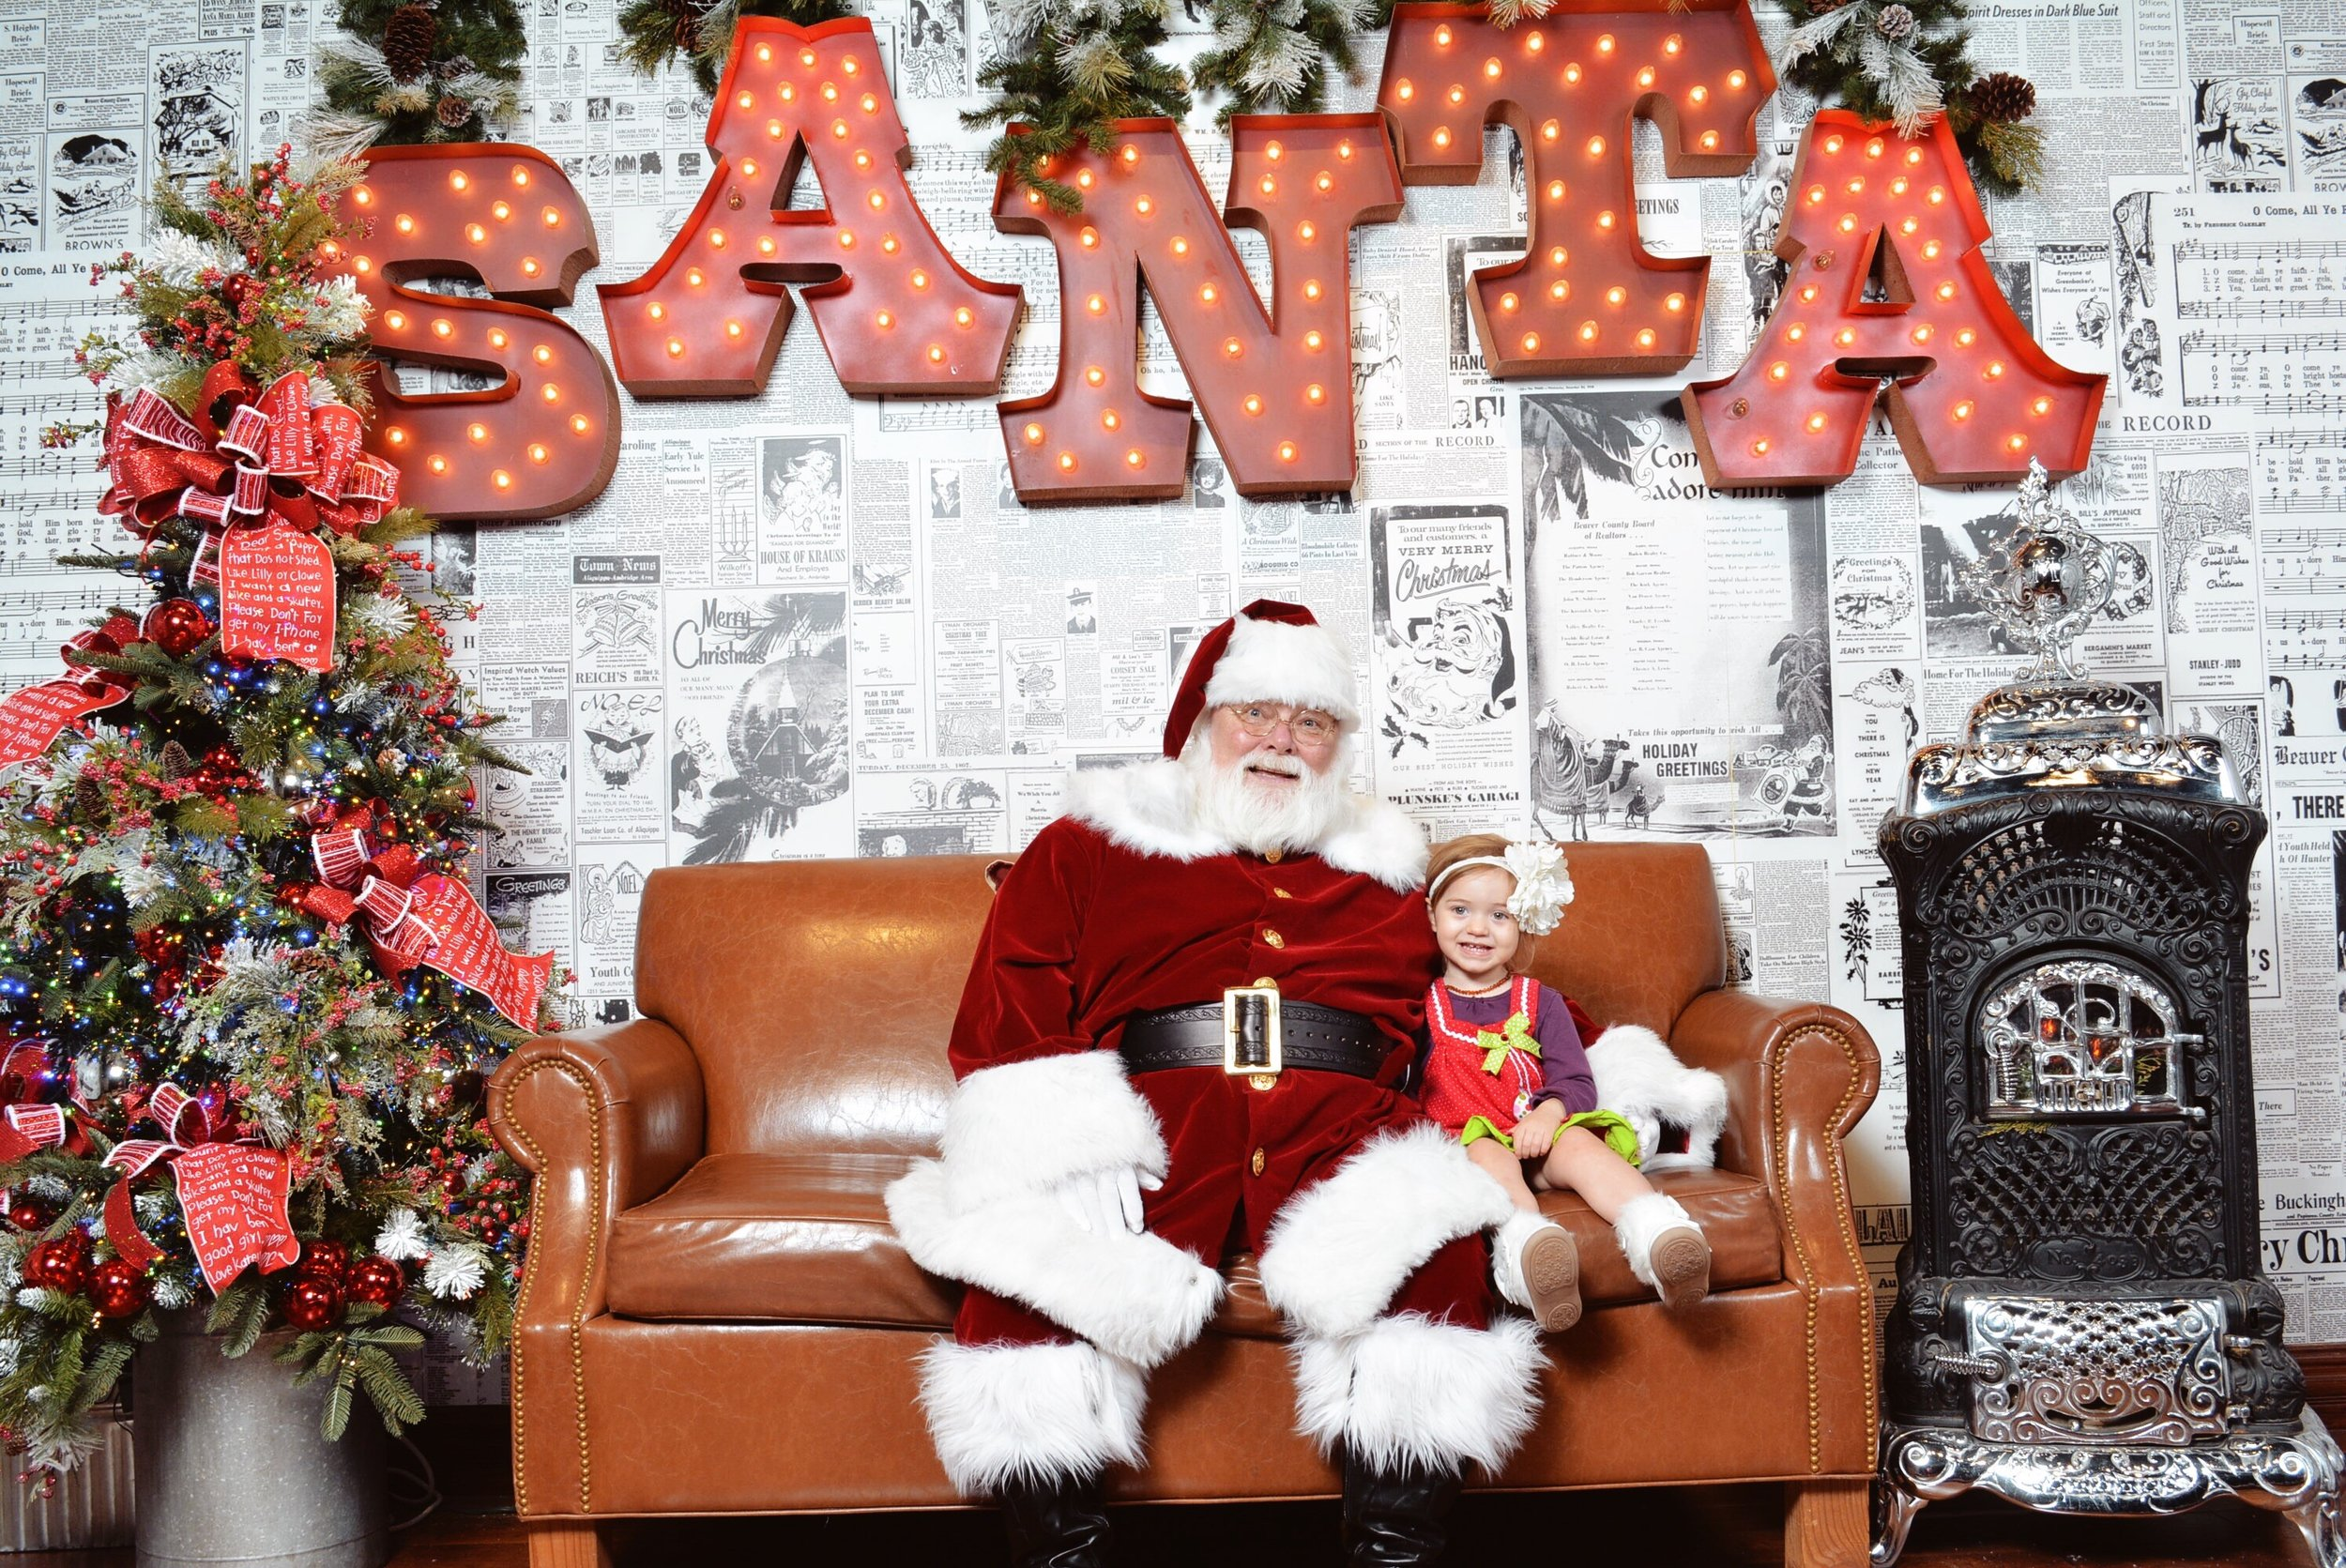 Santa Photos at The Christmas Place in Pigeon Forge, Tennessee | Mallorie Owens